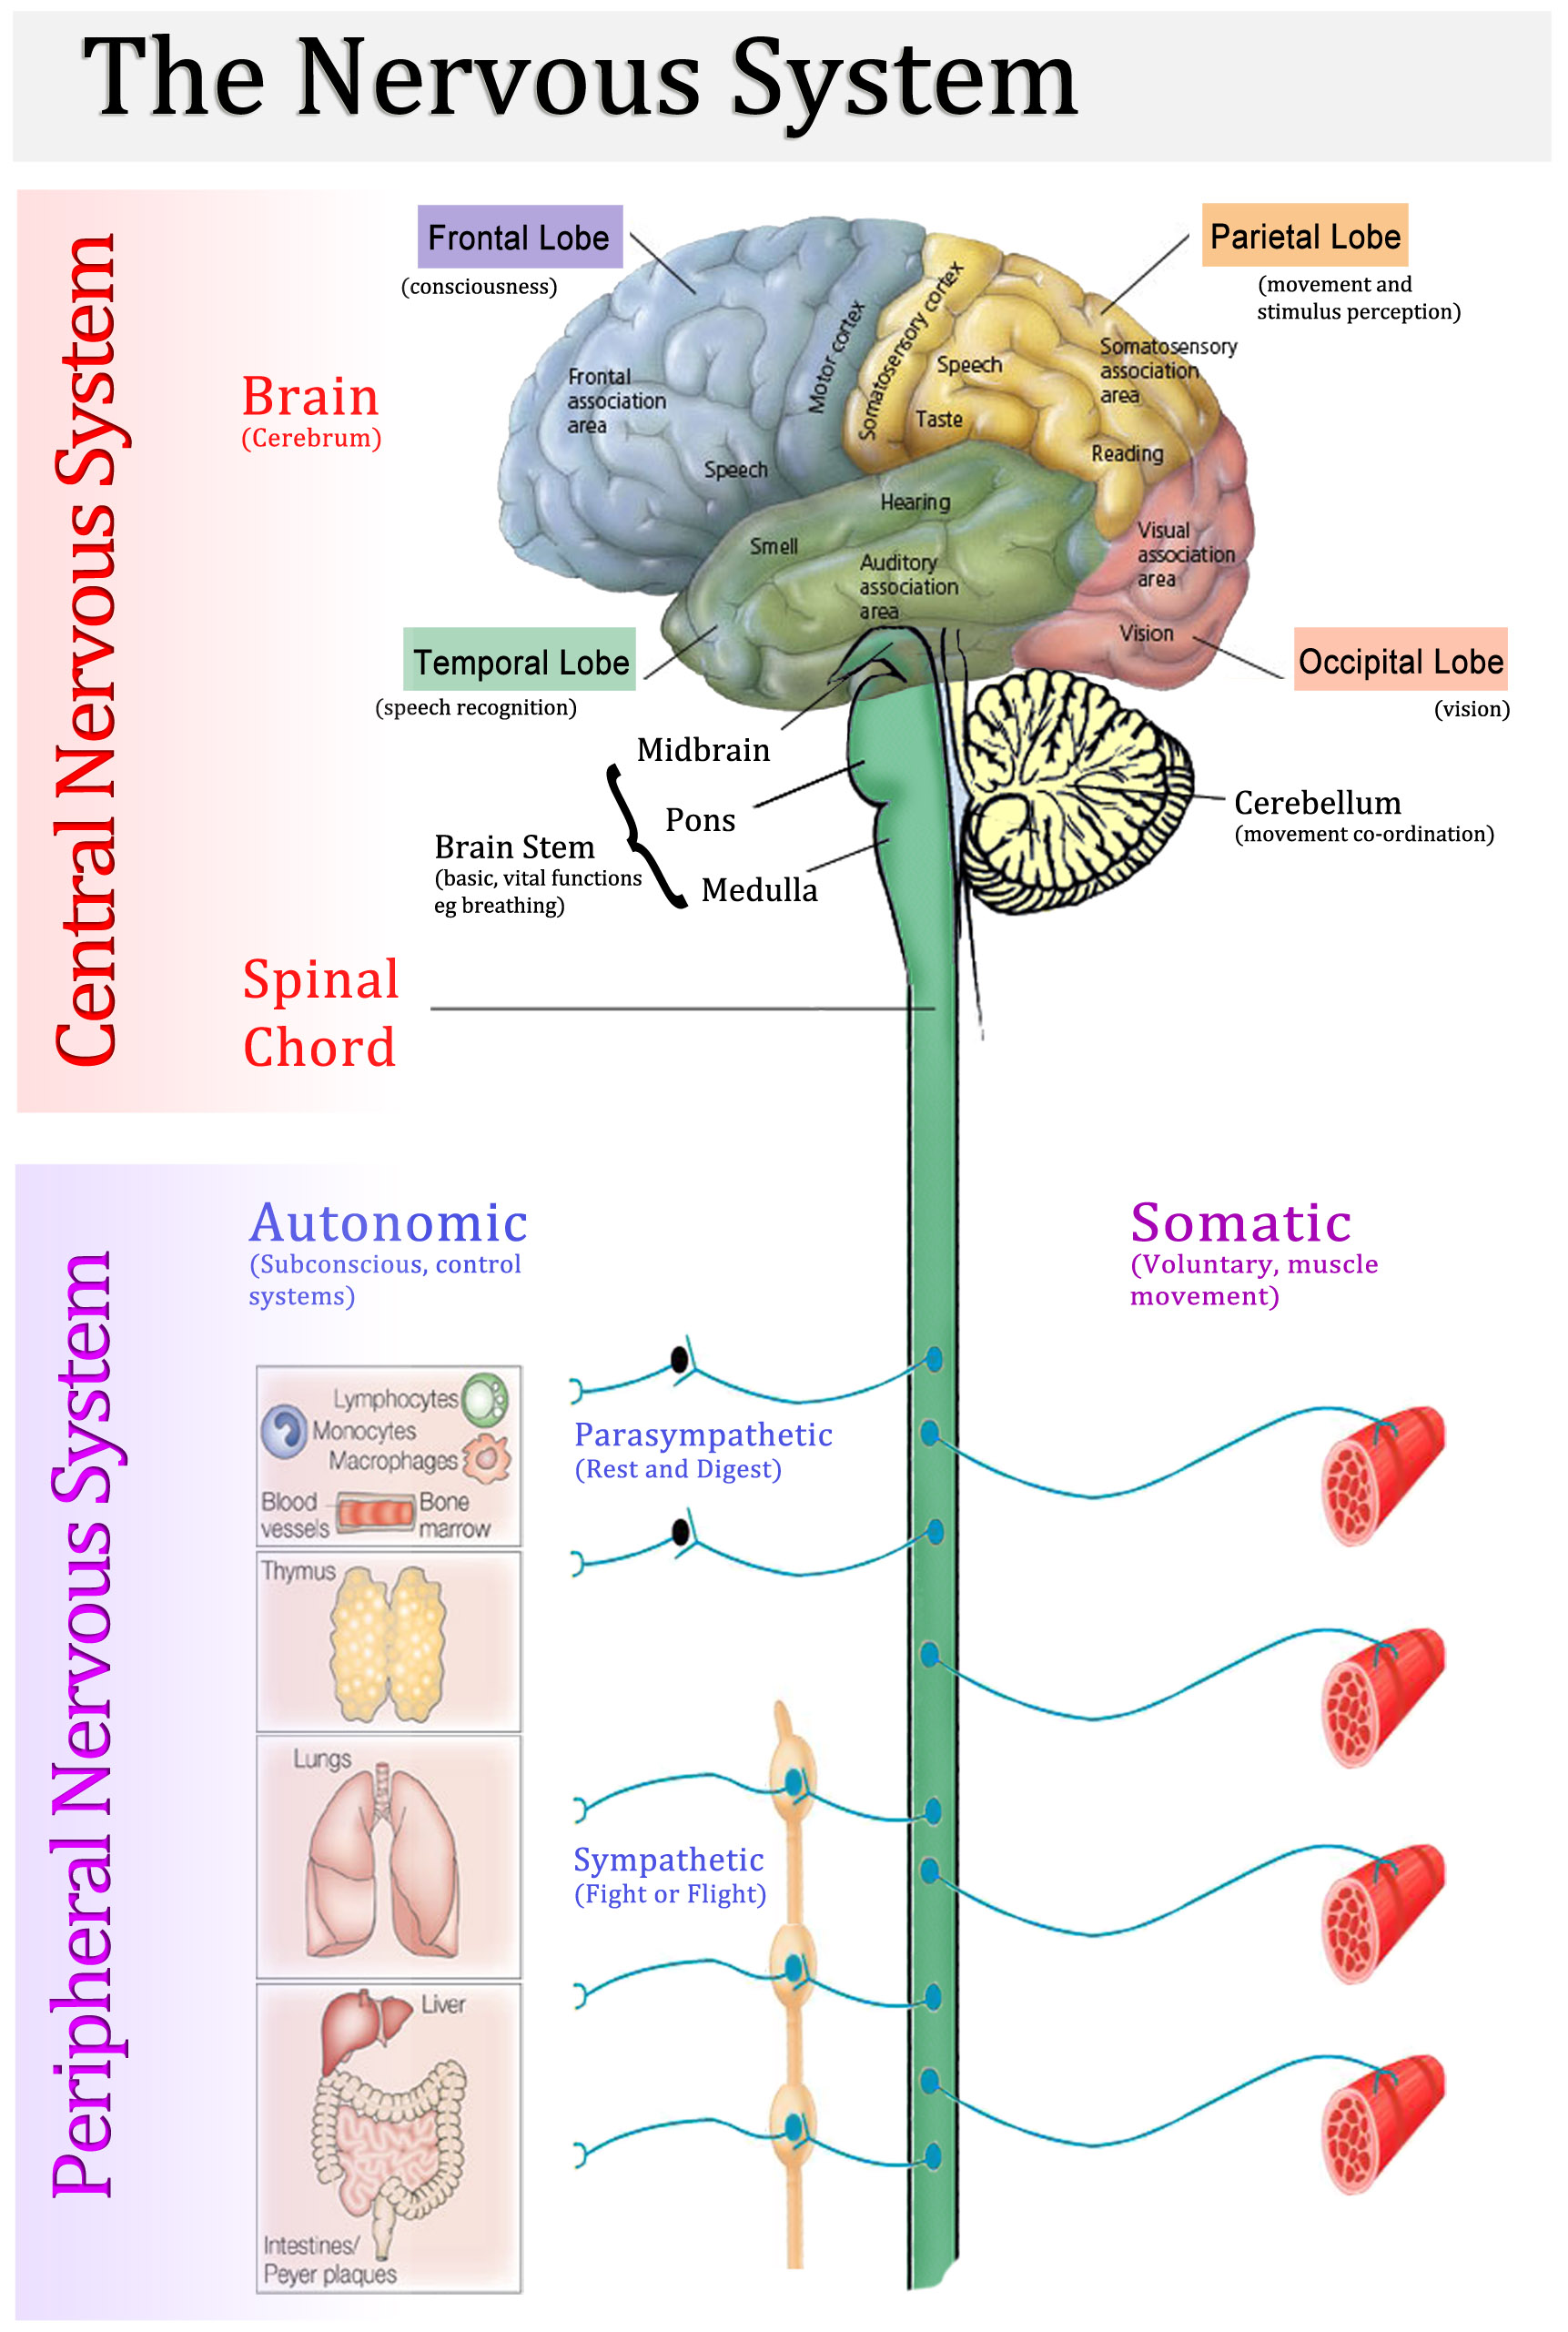 Central Nervous System vs Peripheral Nervous System